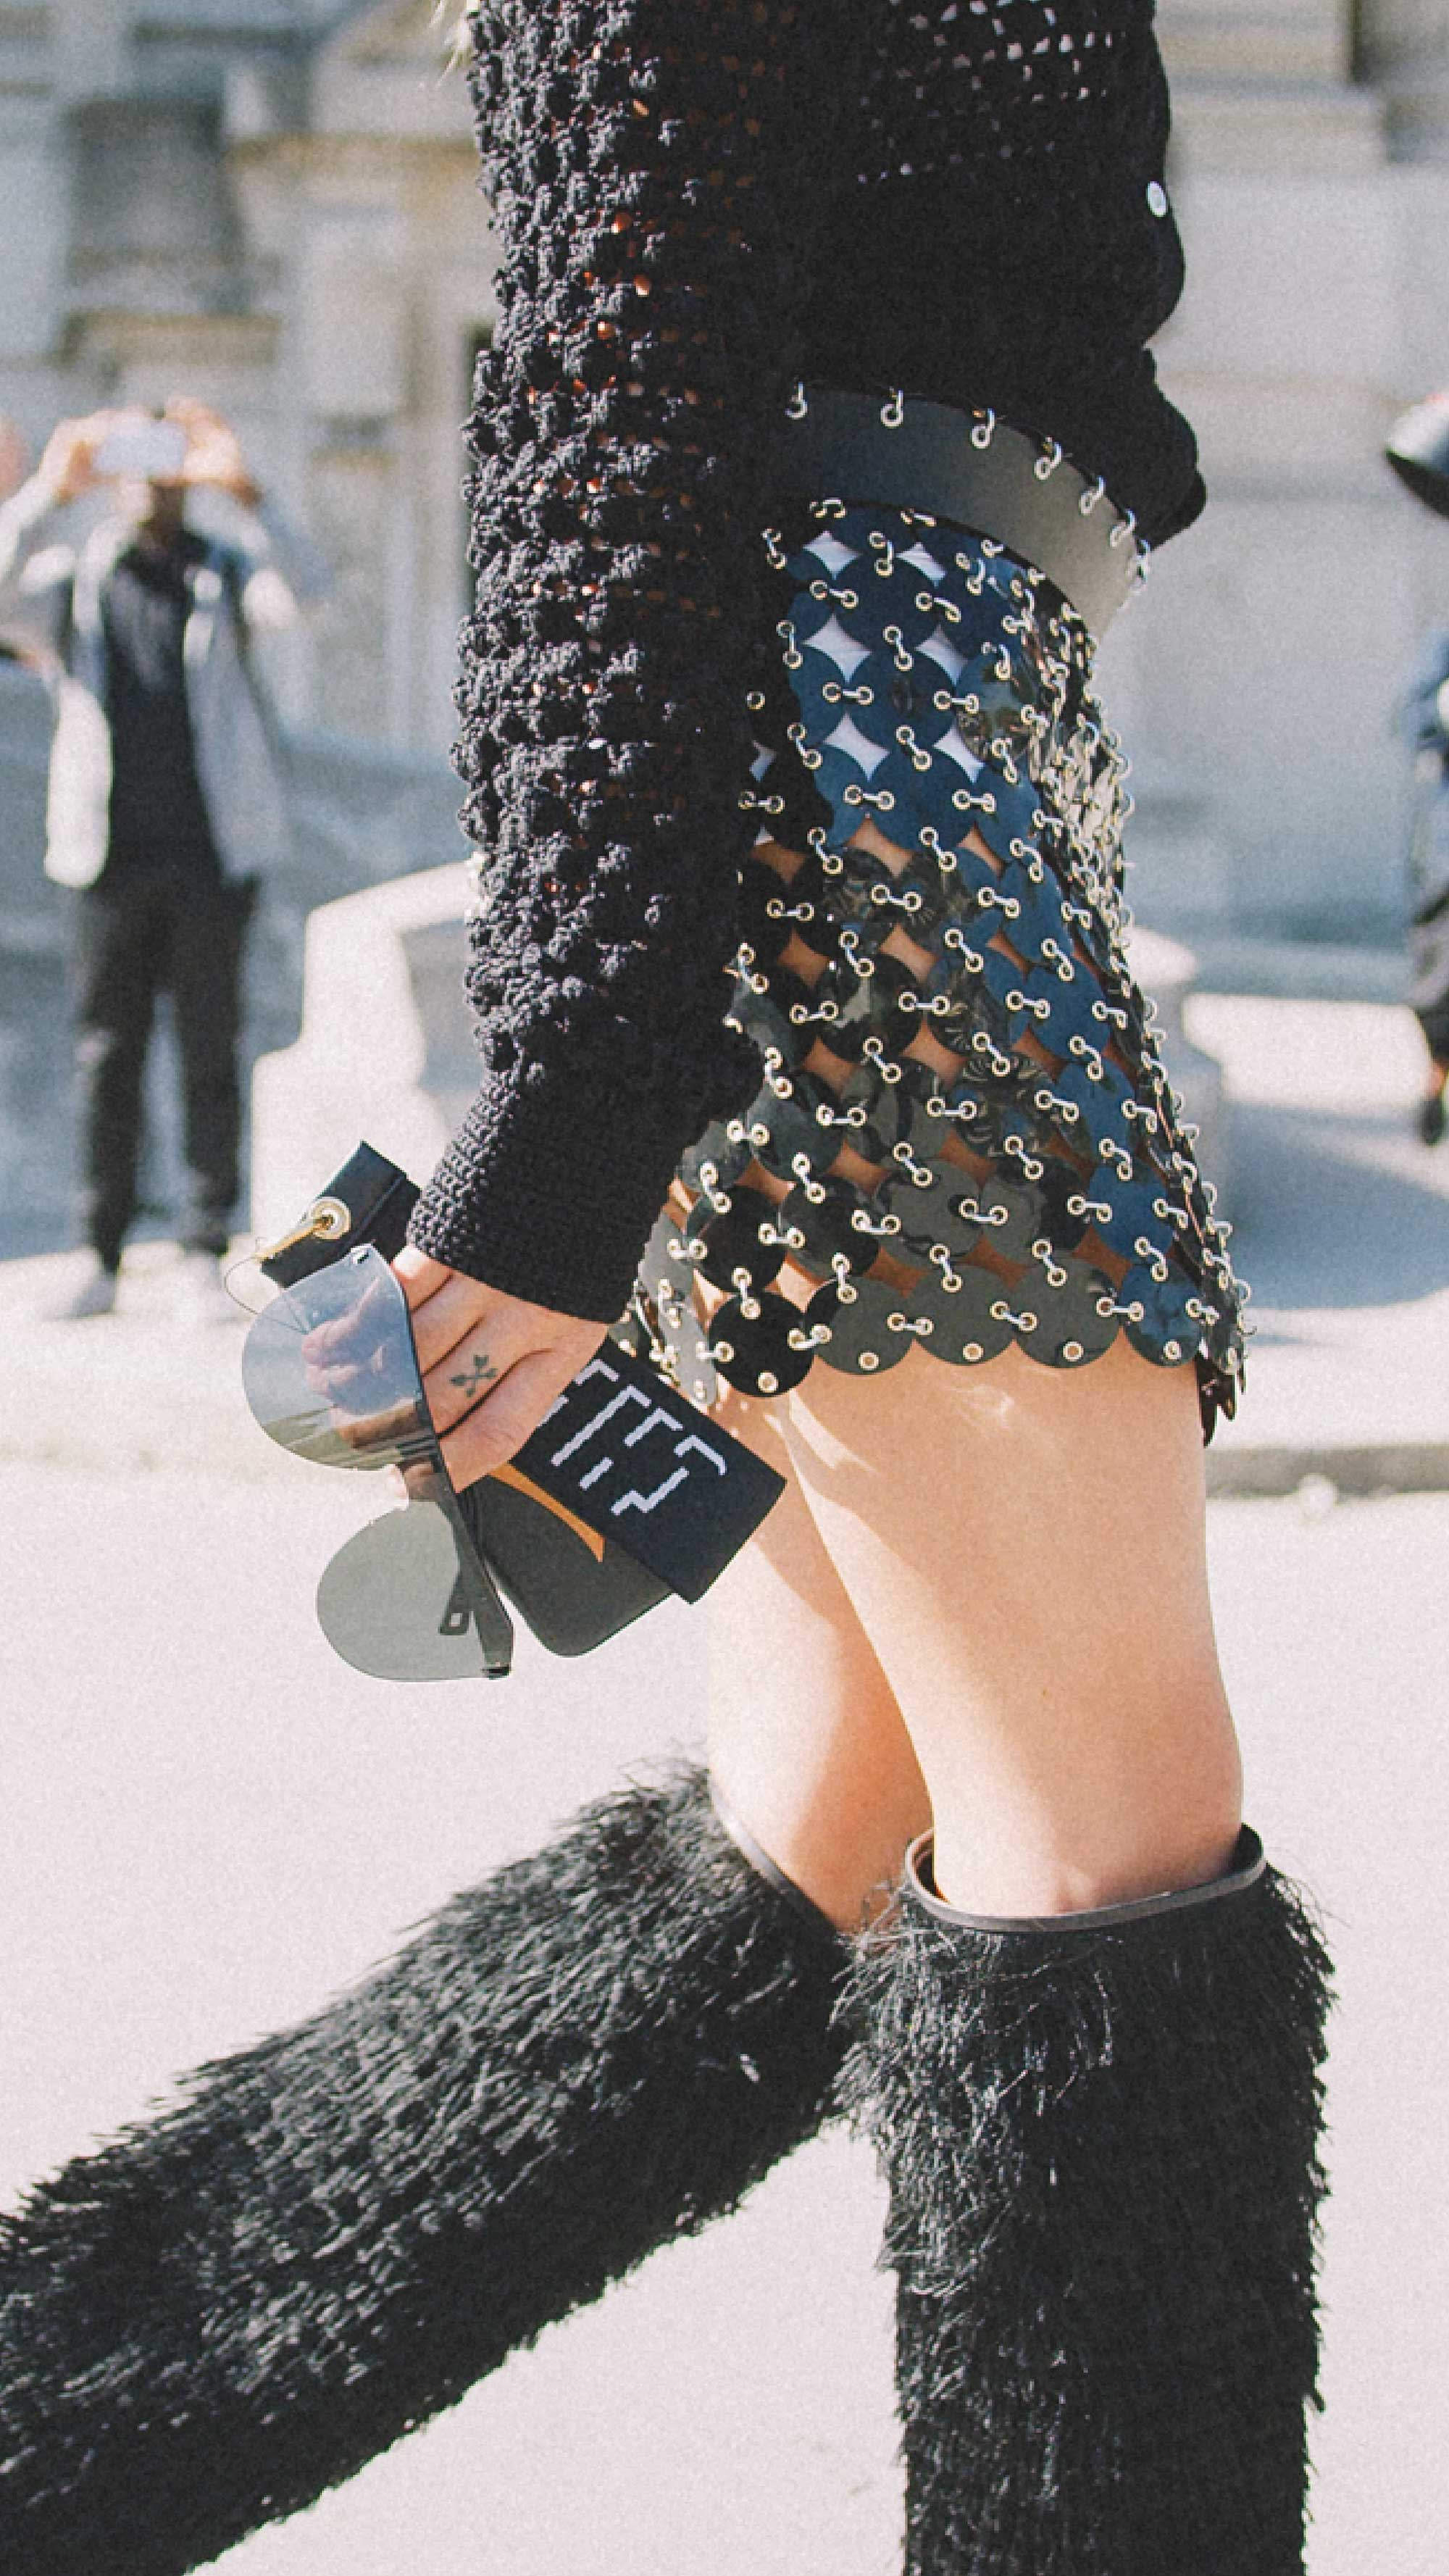 Paris-fashion-street-style-outfits-week-day-four-ss19-33.jpg